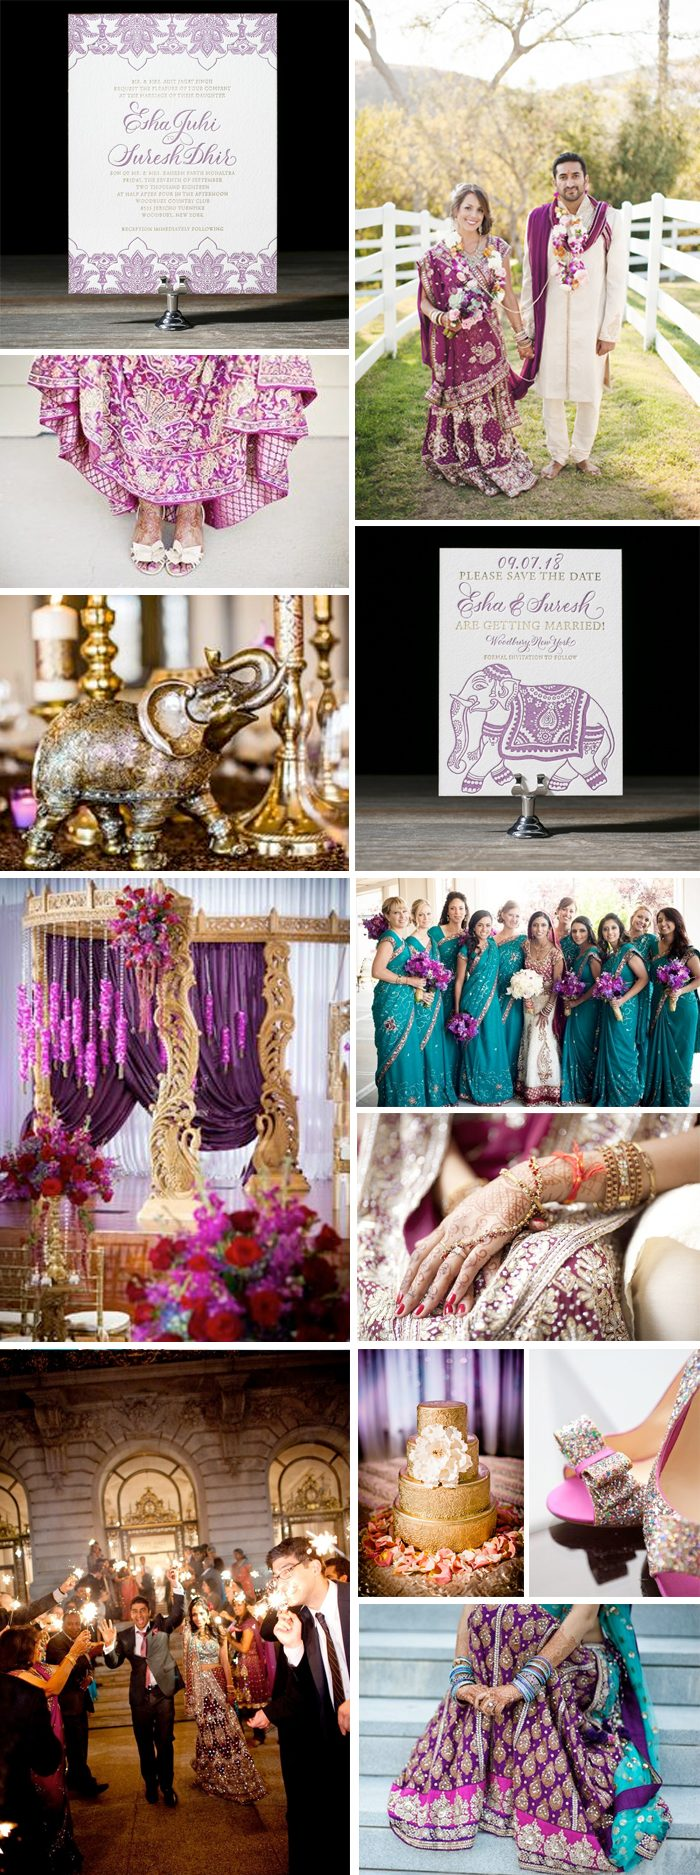 Indian wedding inspiration for Bella Figura's Darjeeling invitation suite